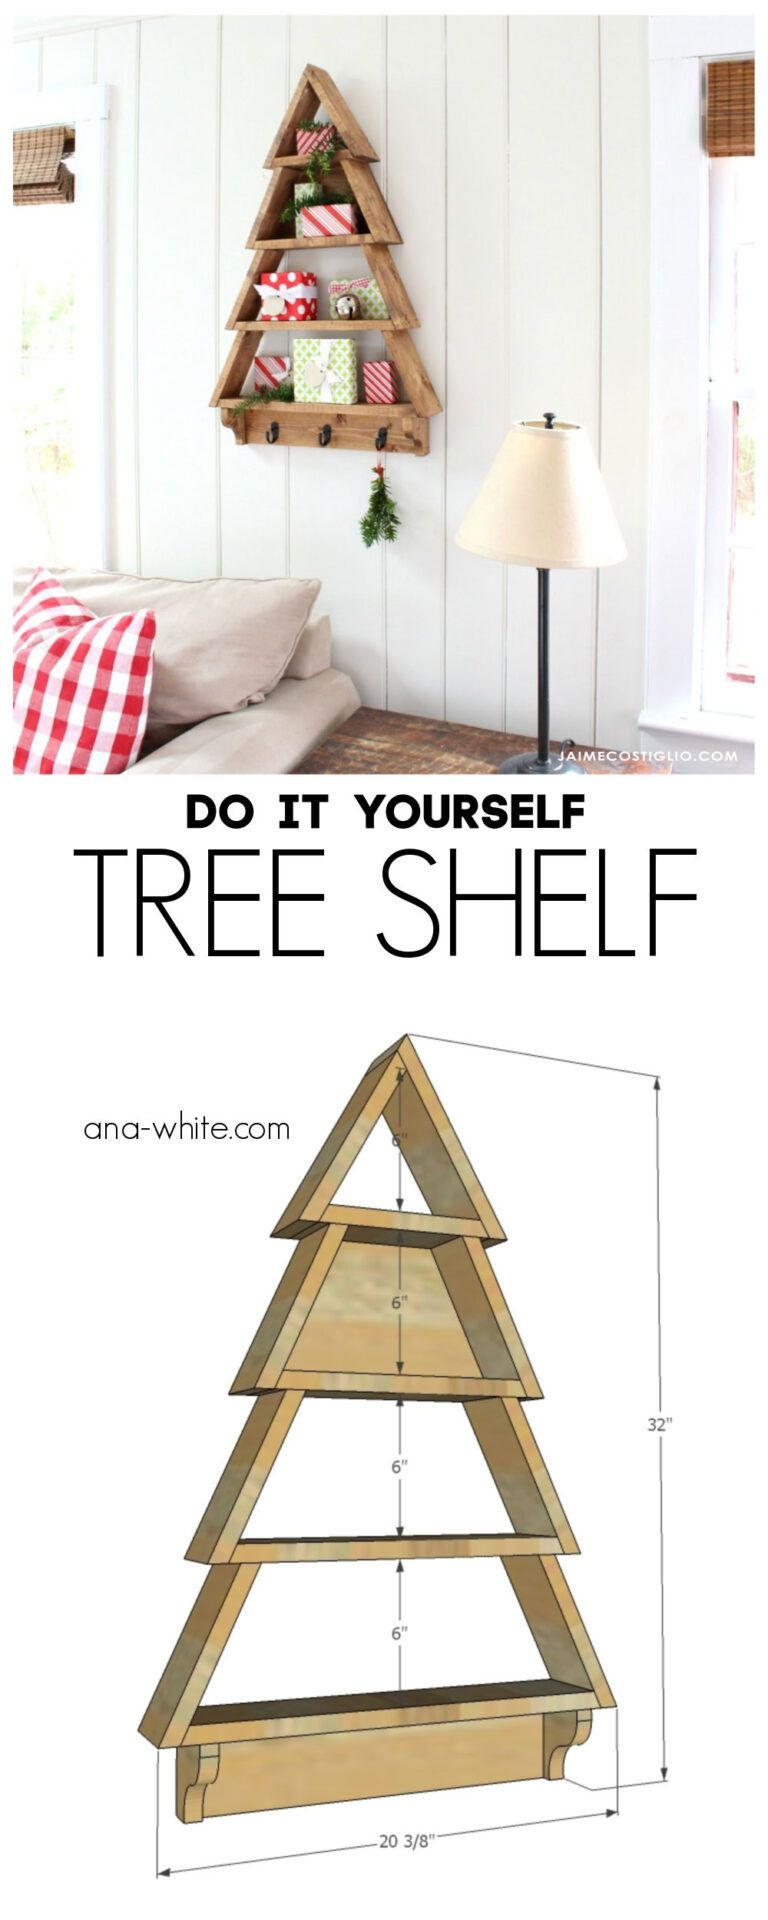 DIY Tree Shelf - Jaime Costiglio